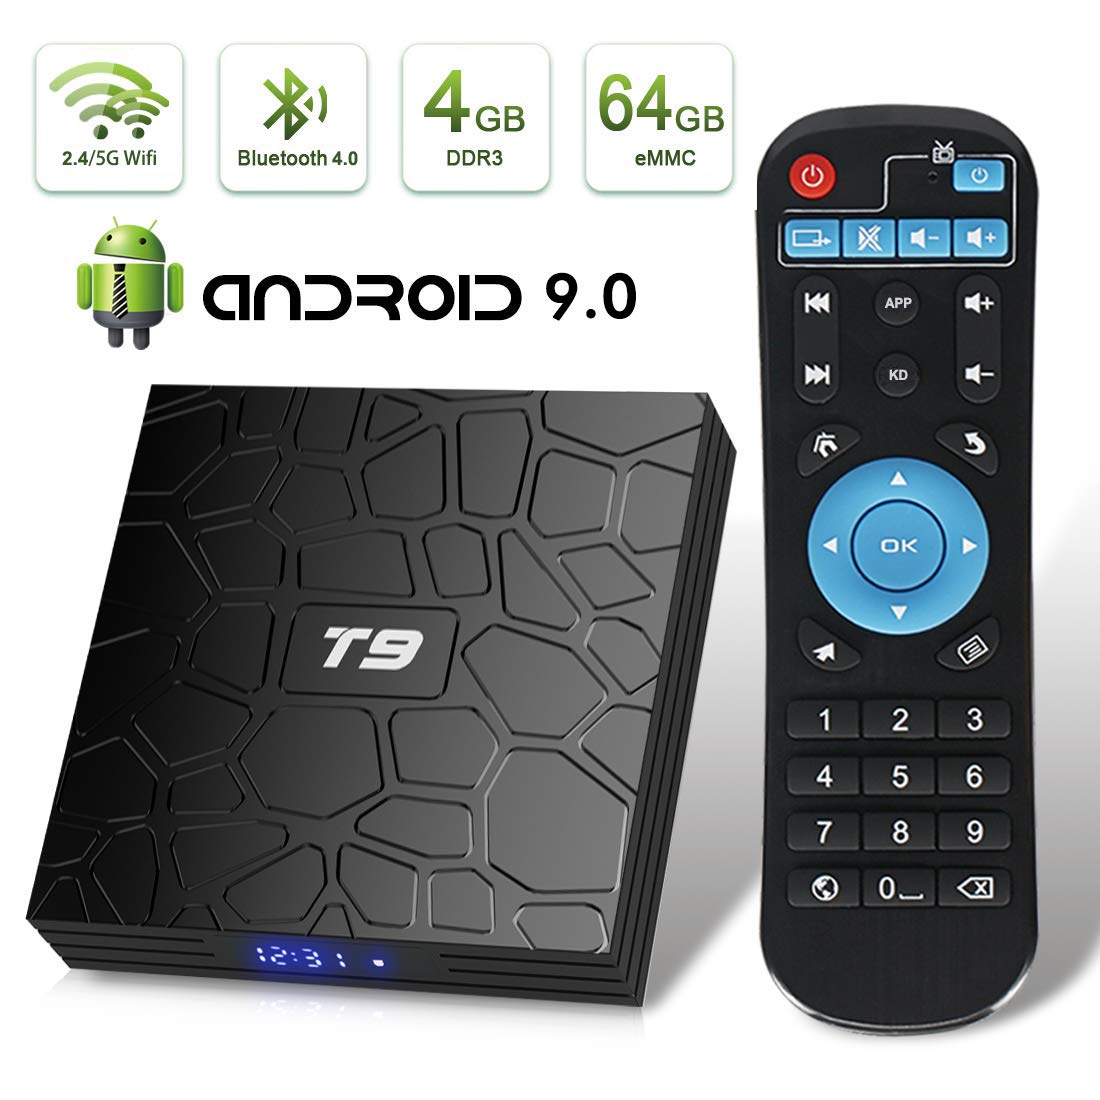 EVER EXPRESS T9 Android 9.0 TV Box 4GB DDR3 RAM 64GB ROM RK3318 Quad-Core Cortex-A53 64 Bits Bluetooth 4.0 Support 2.4/5.0GHz WiFi 4K 3D Ultra HD HDMI H.265